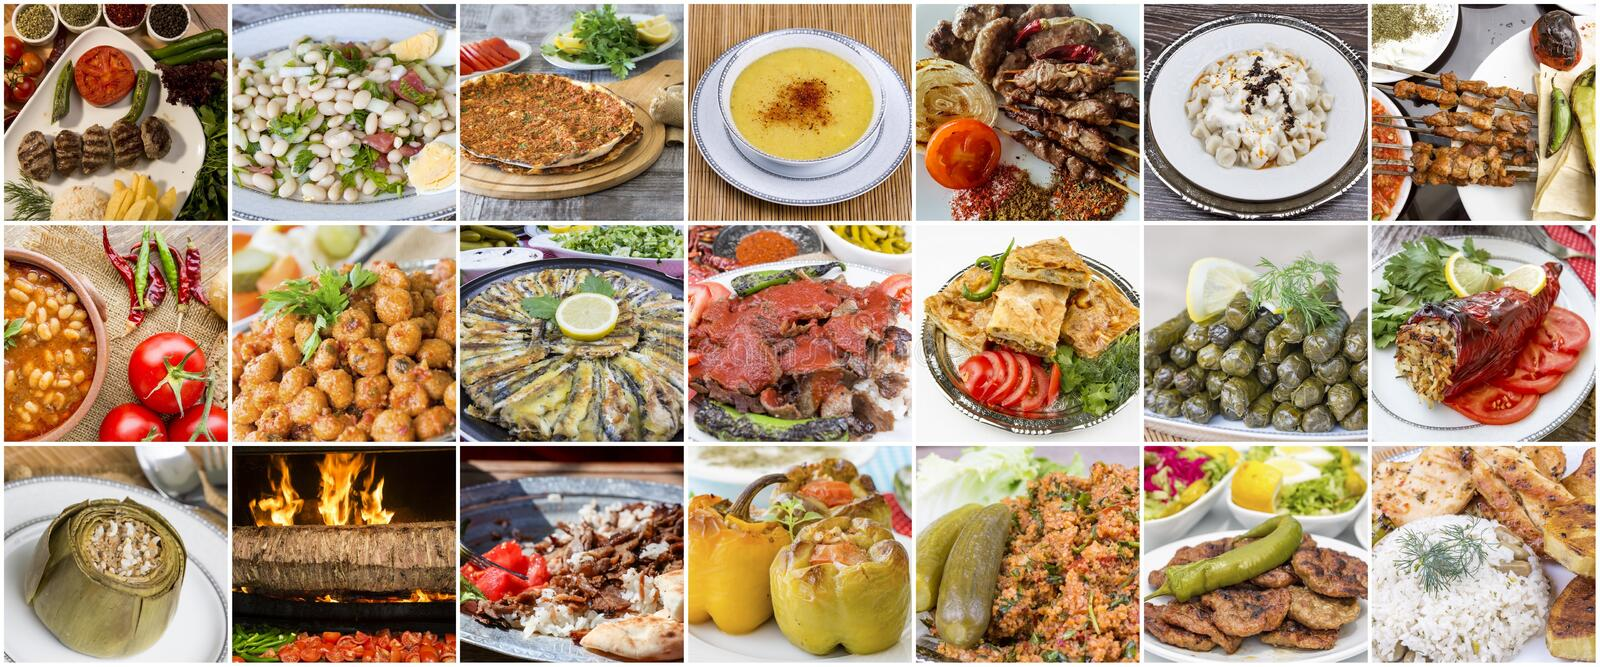 Traditional delicious Turkish foods collage. Food concept photo.  royalty free stock photo